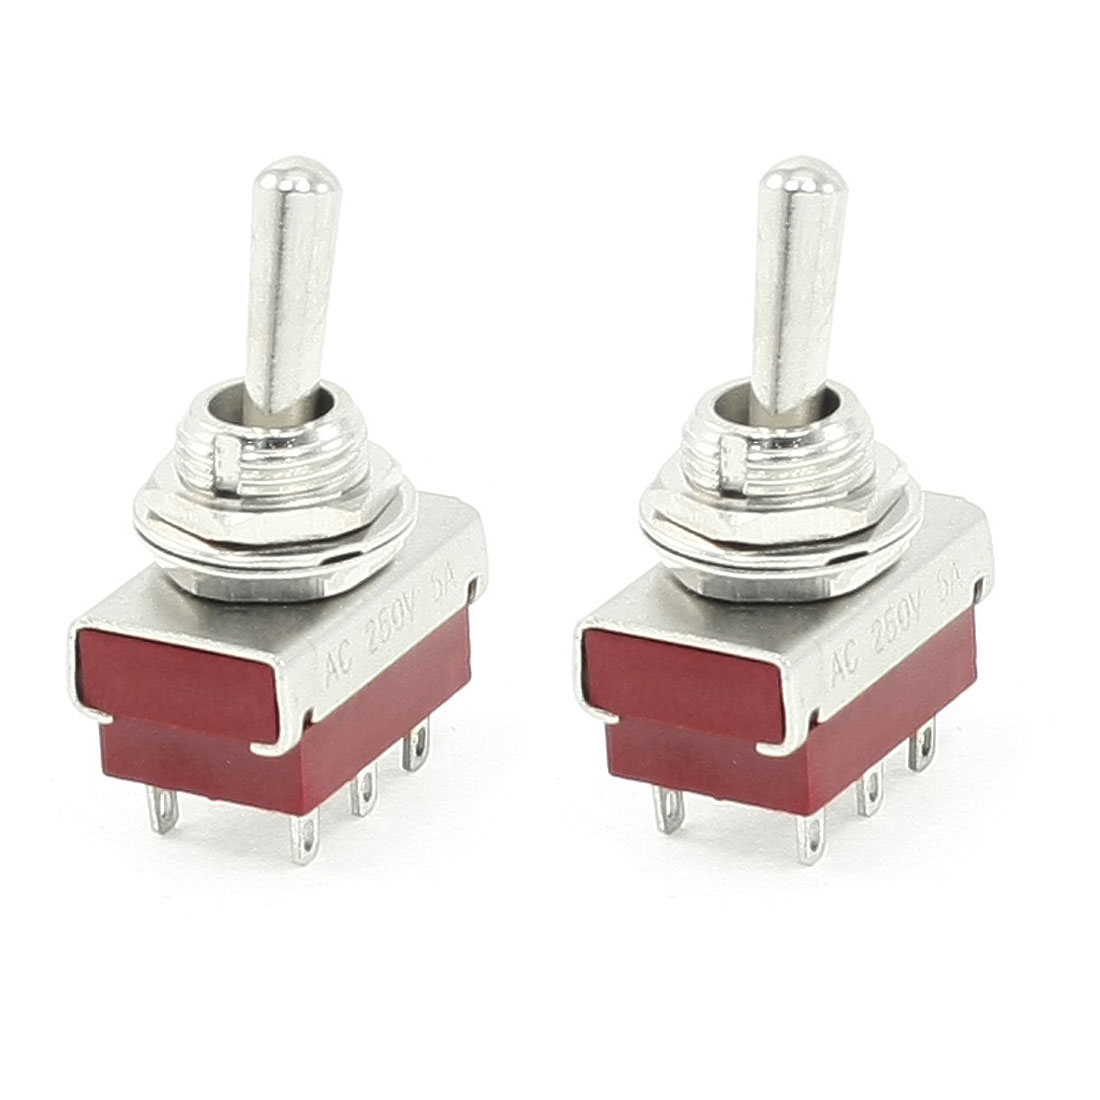 2 Pieces DPDT ON-ON 6 Pin Panel Mounted Toggle Switch 5A AC 250V